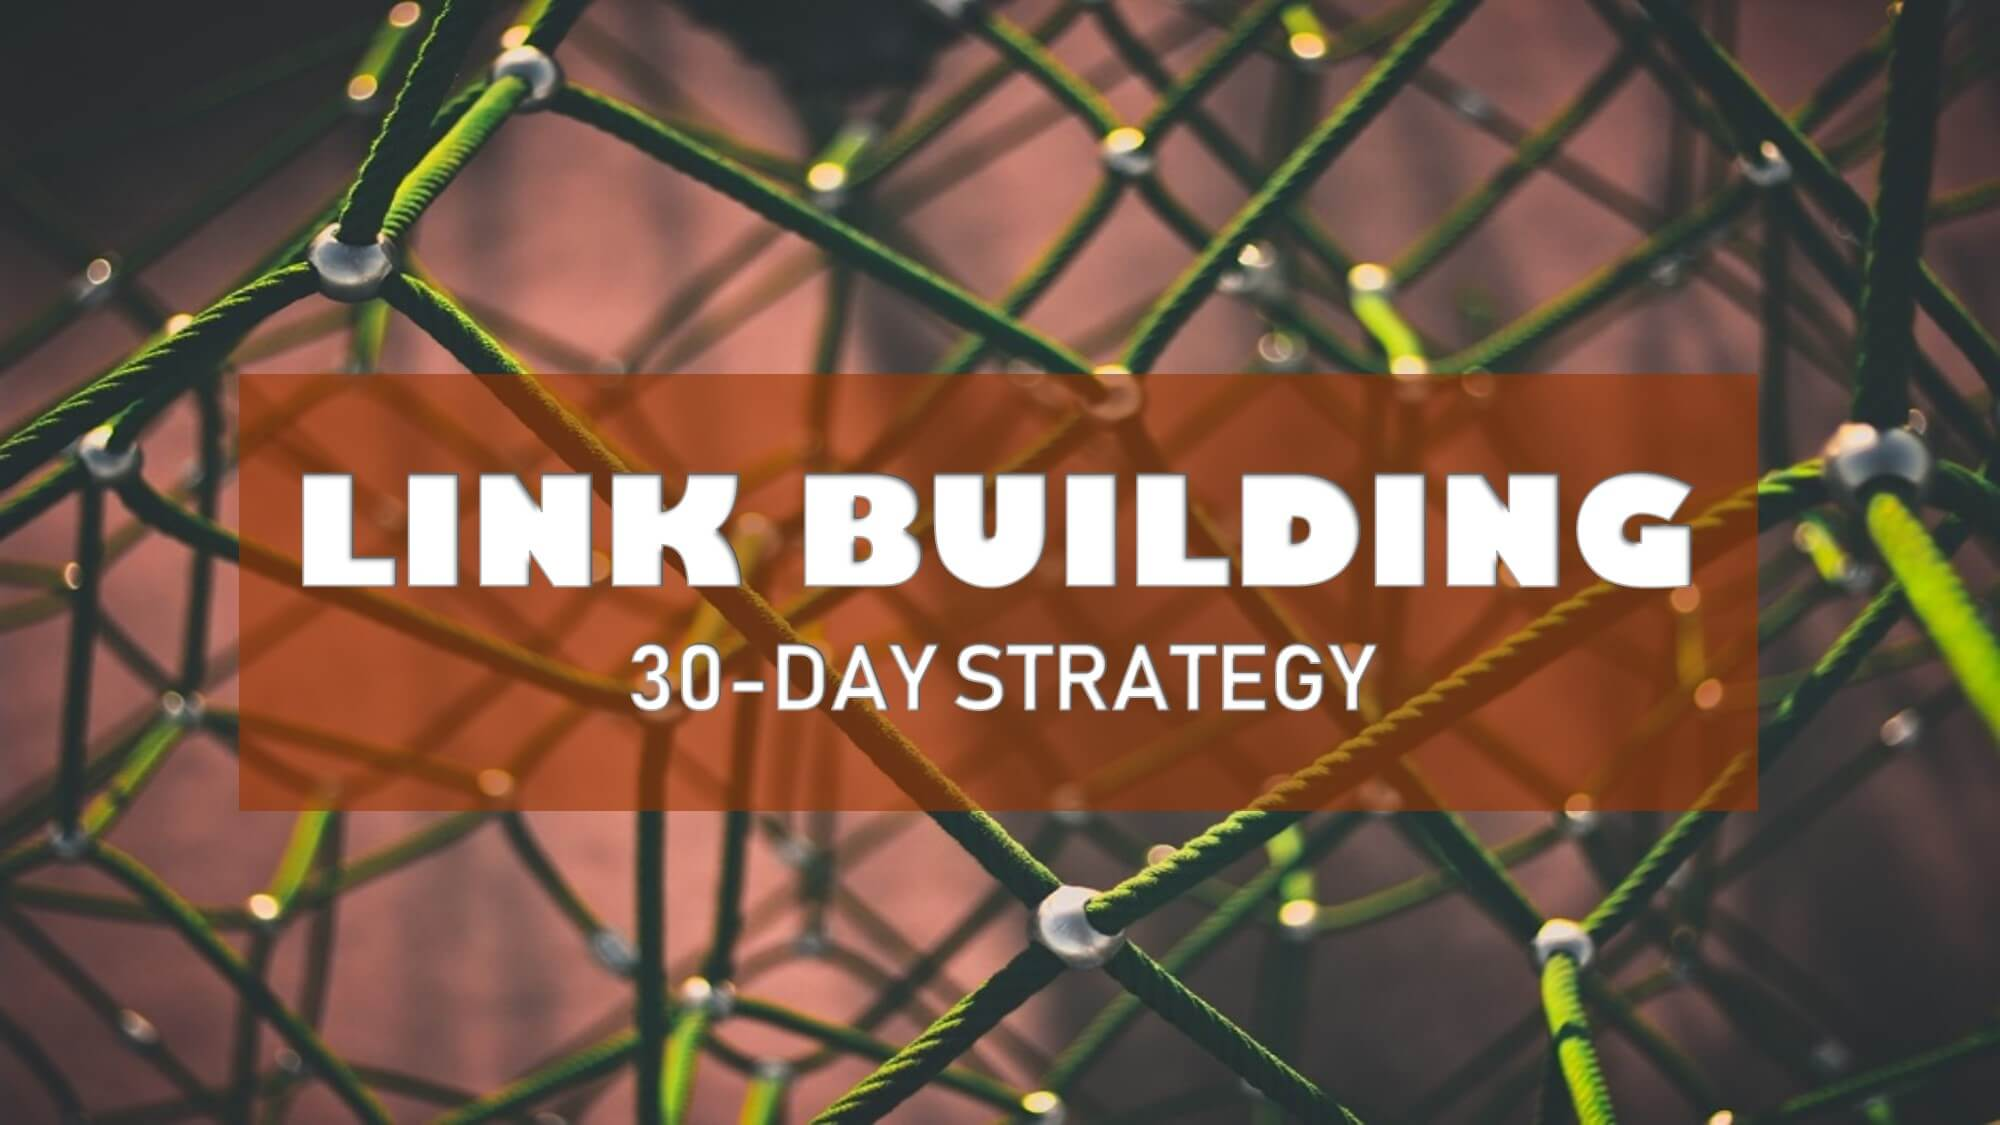 How To Execute A Link Building Strategy In 30 Days